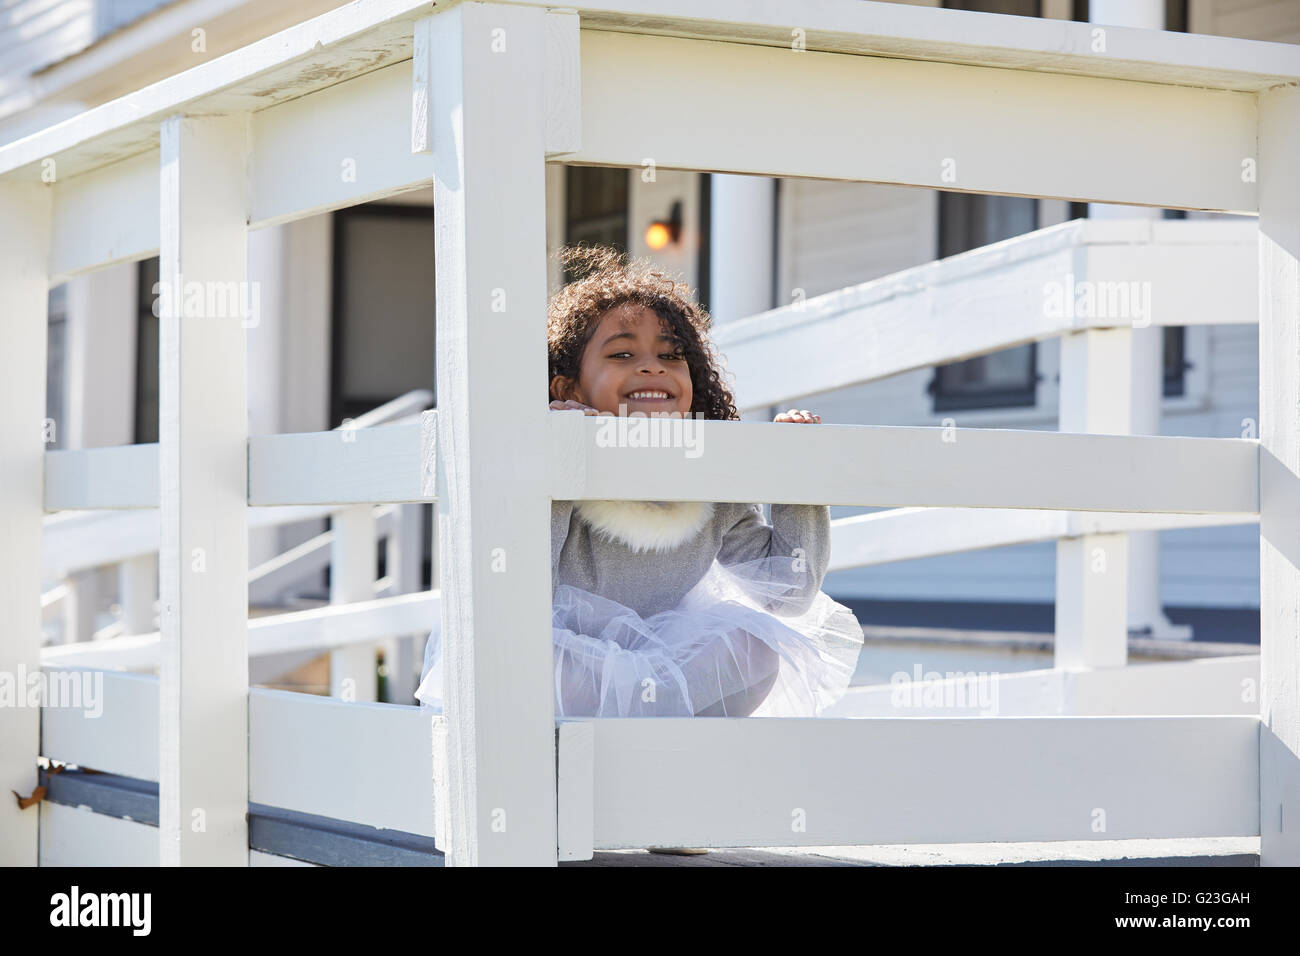 Kid Toddler Girl Playing Hiding Behind A Fence Outdoor Latin Ethnicity